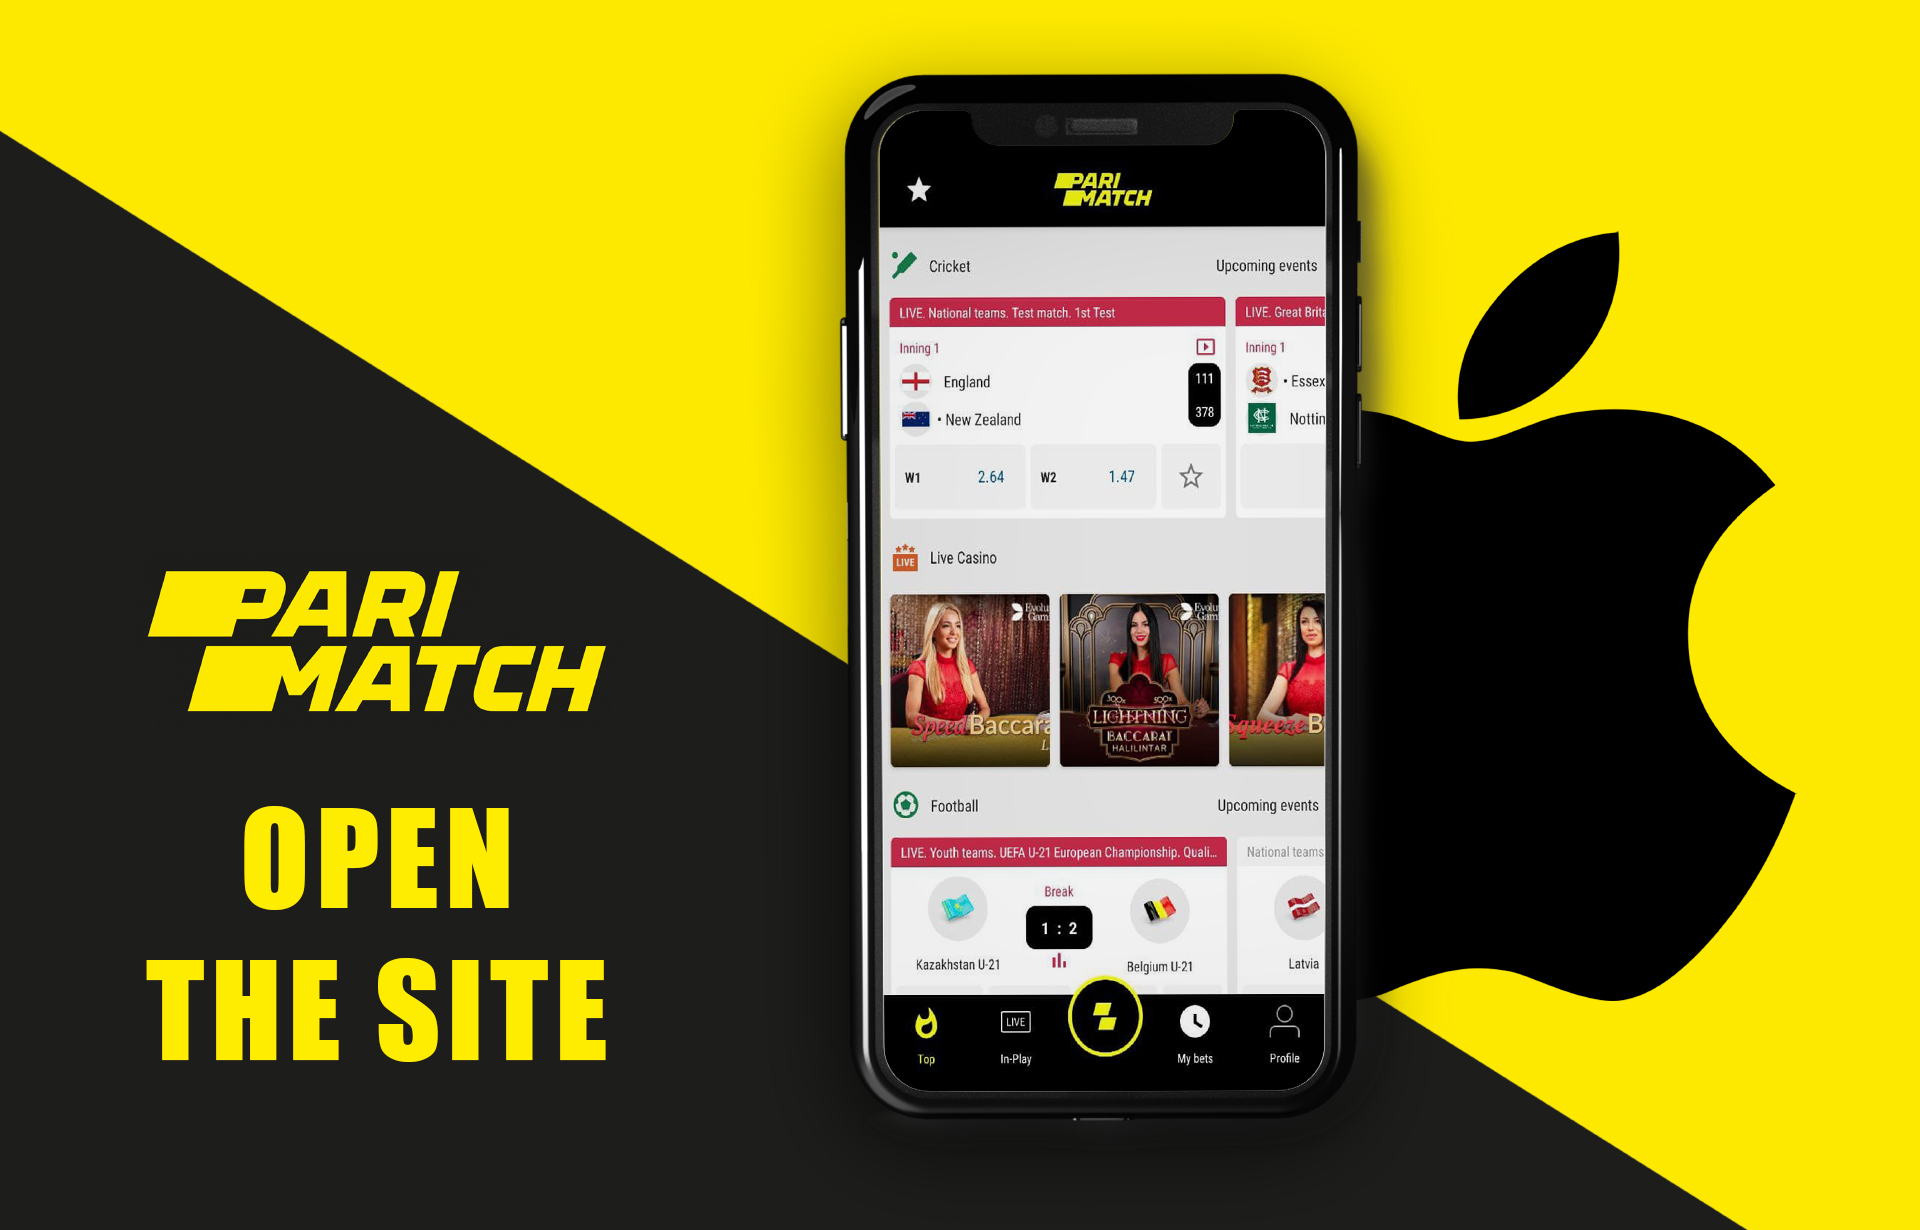 Open the website of Parimatch in a mobile browser on your iPhone.